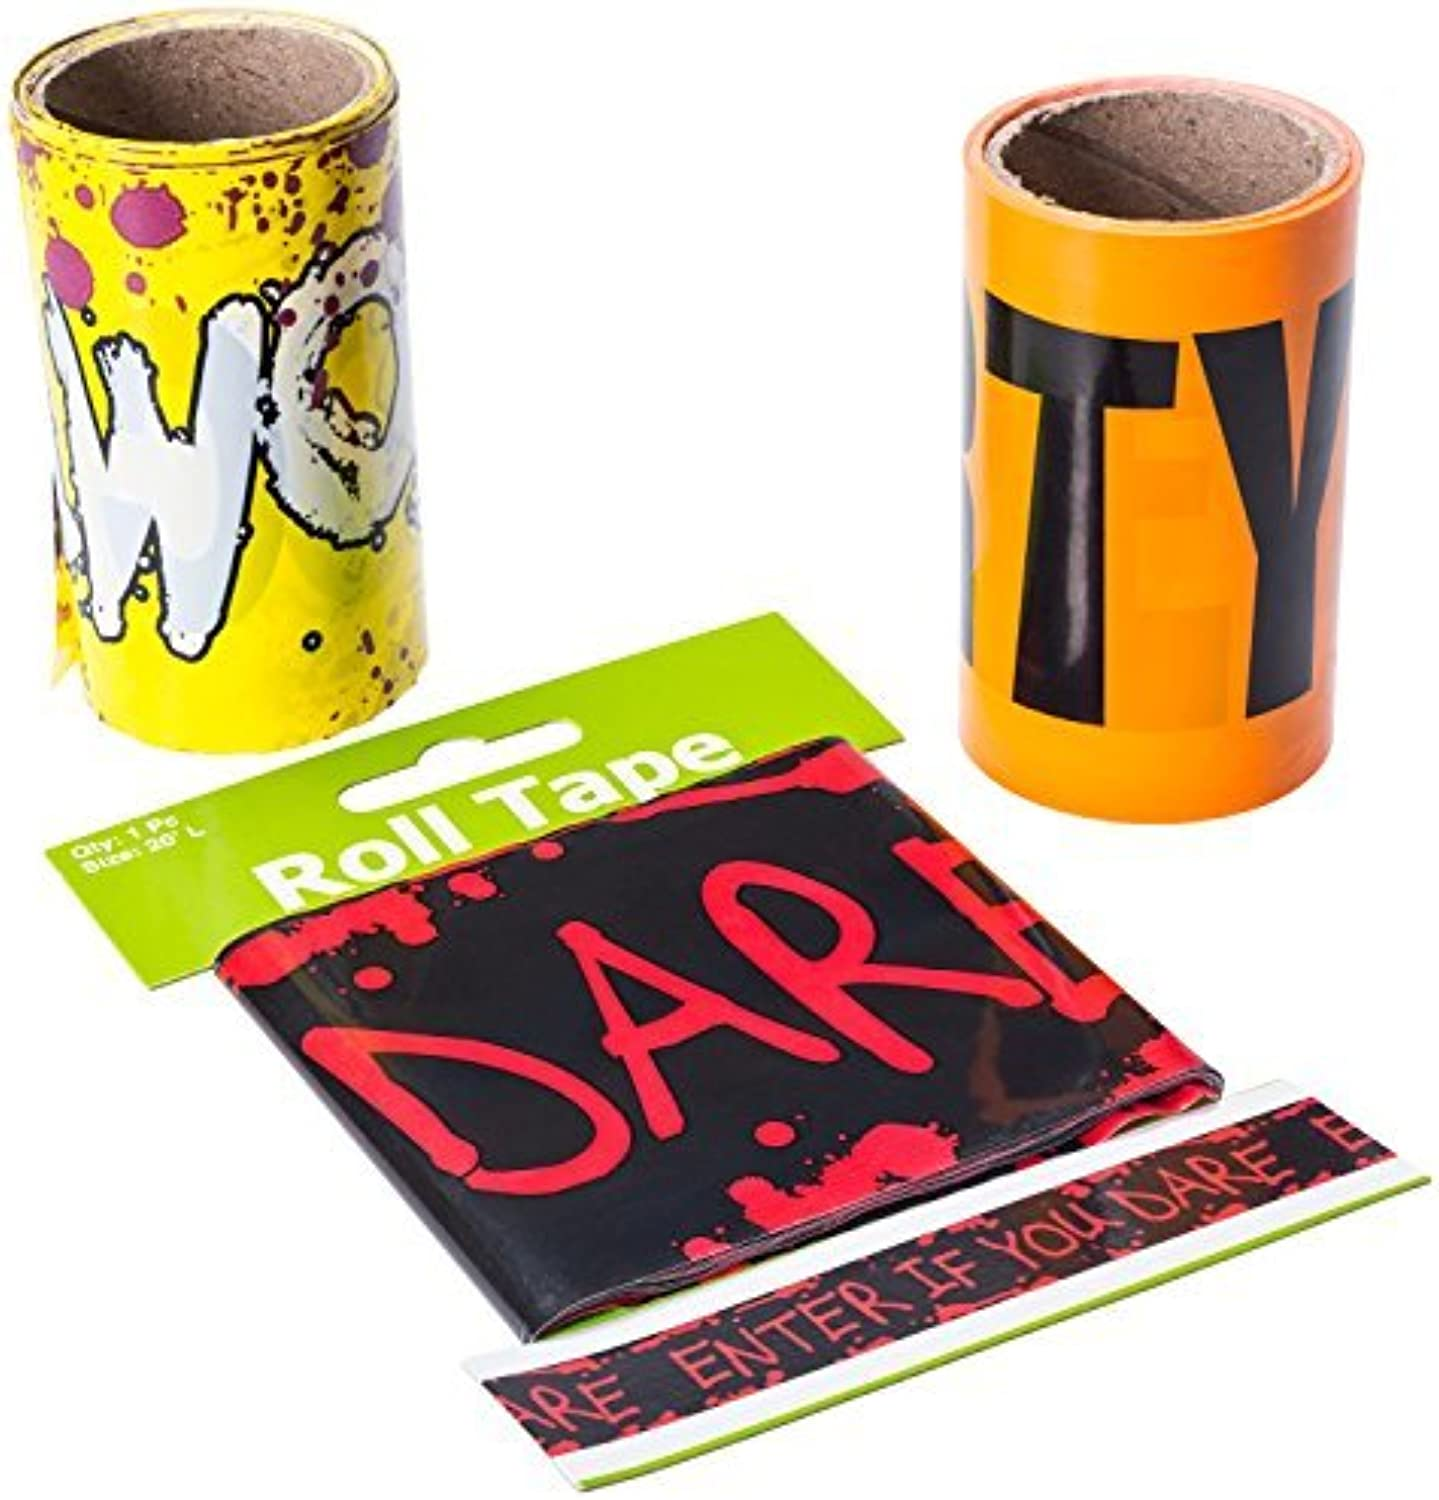 Halloween Party Supplies Set  3 Roles Horror Tape With 2 Zombie Party Posters for Photo Props and Home Decoration's by DWS